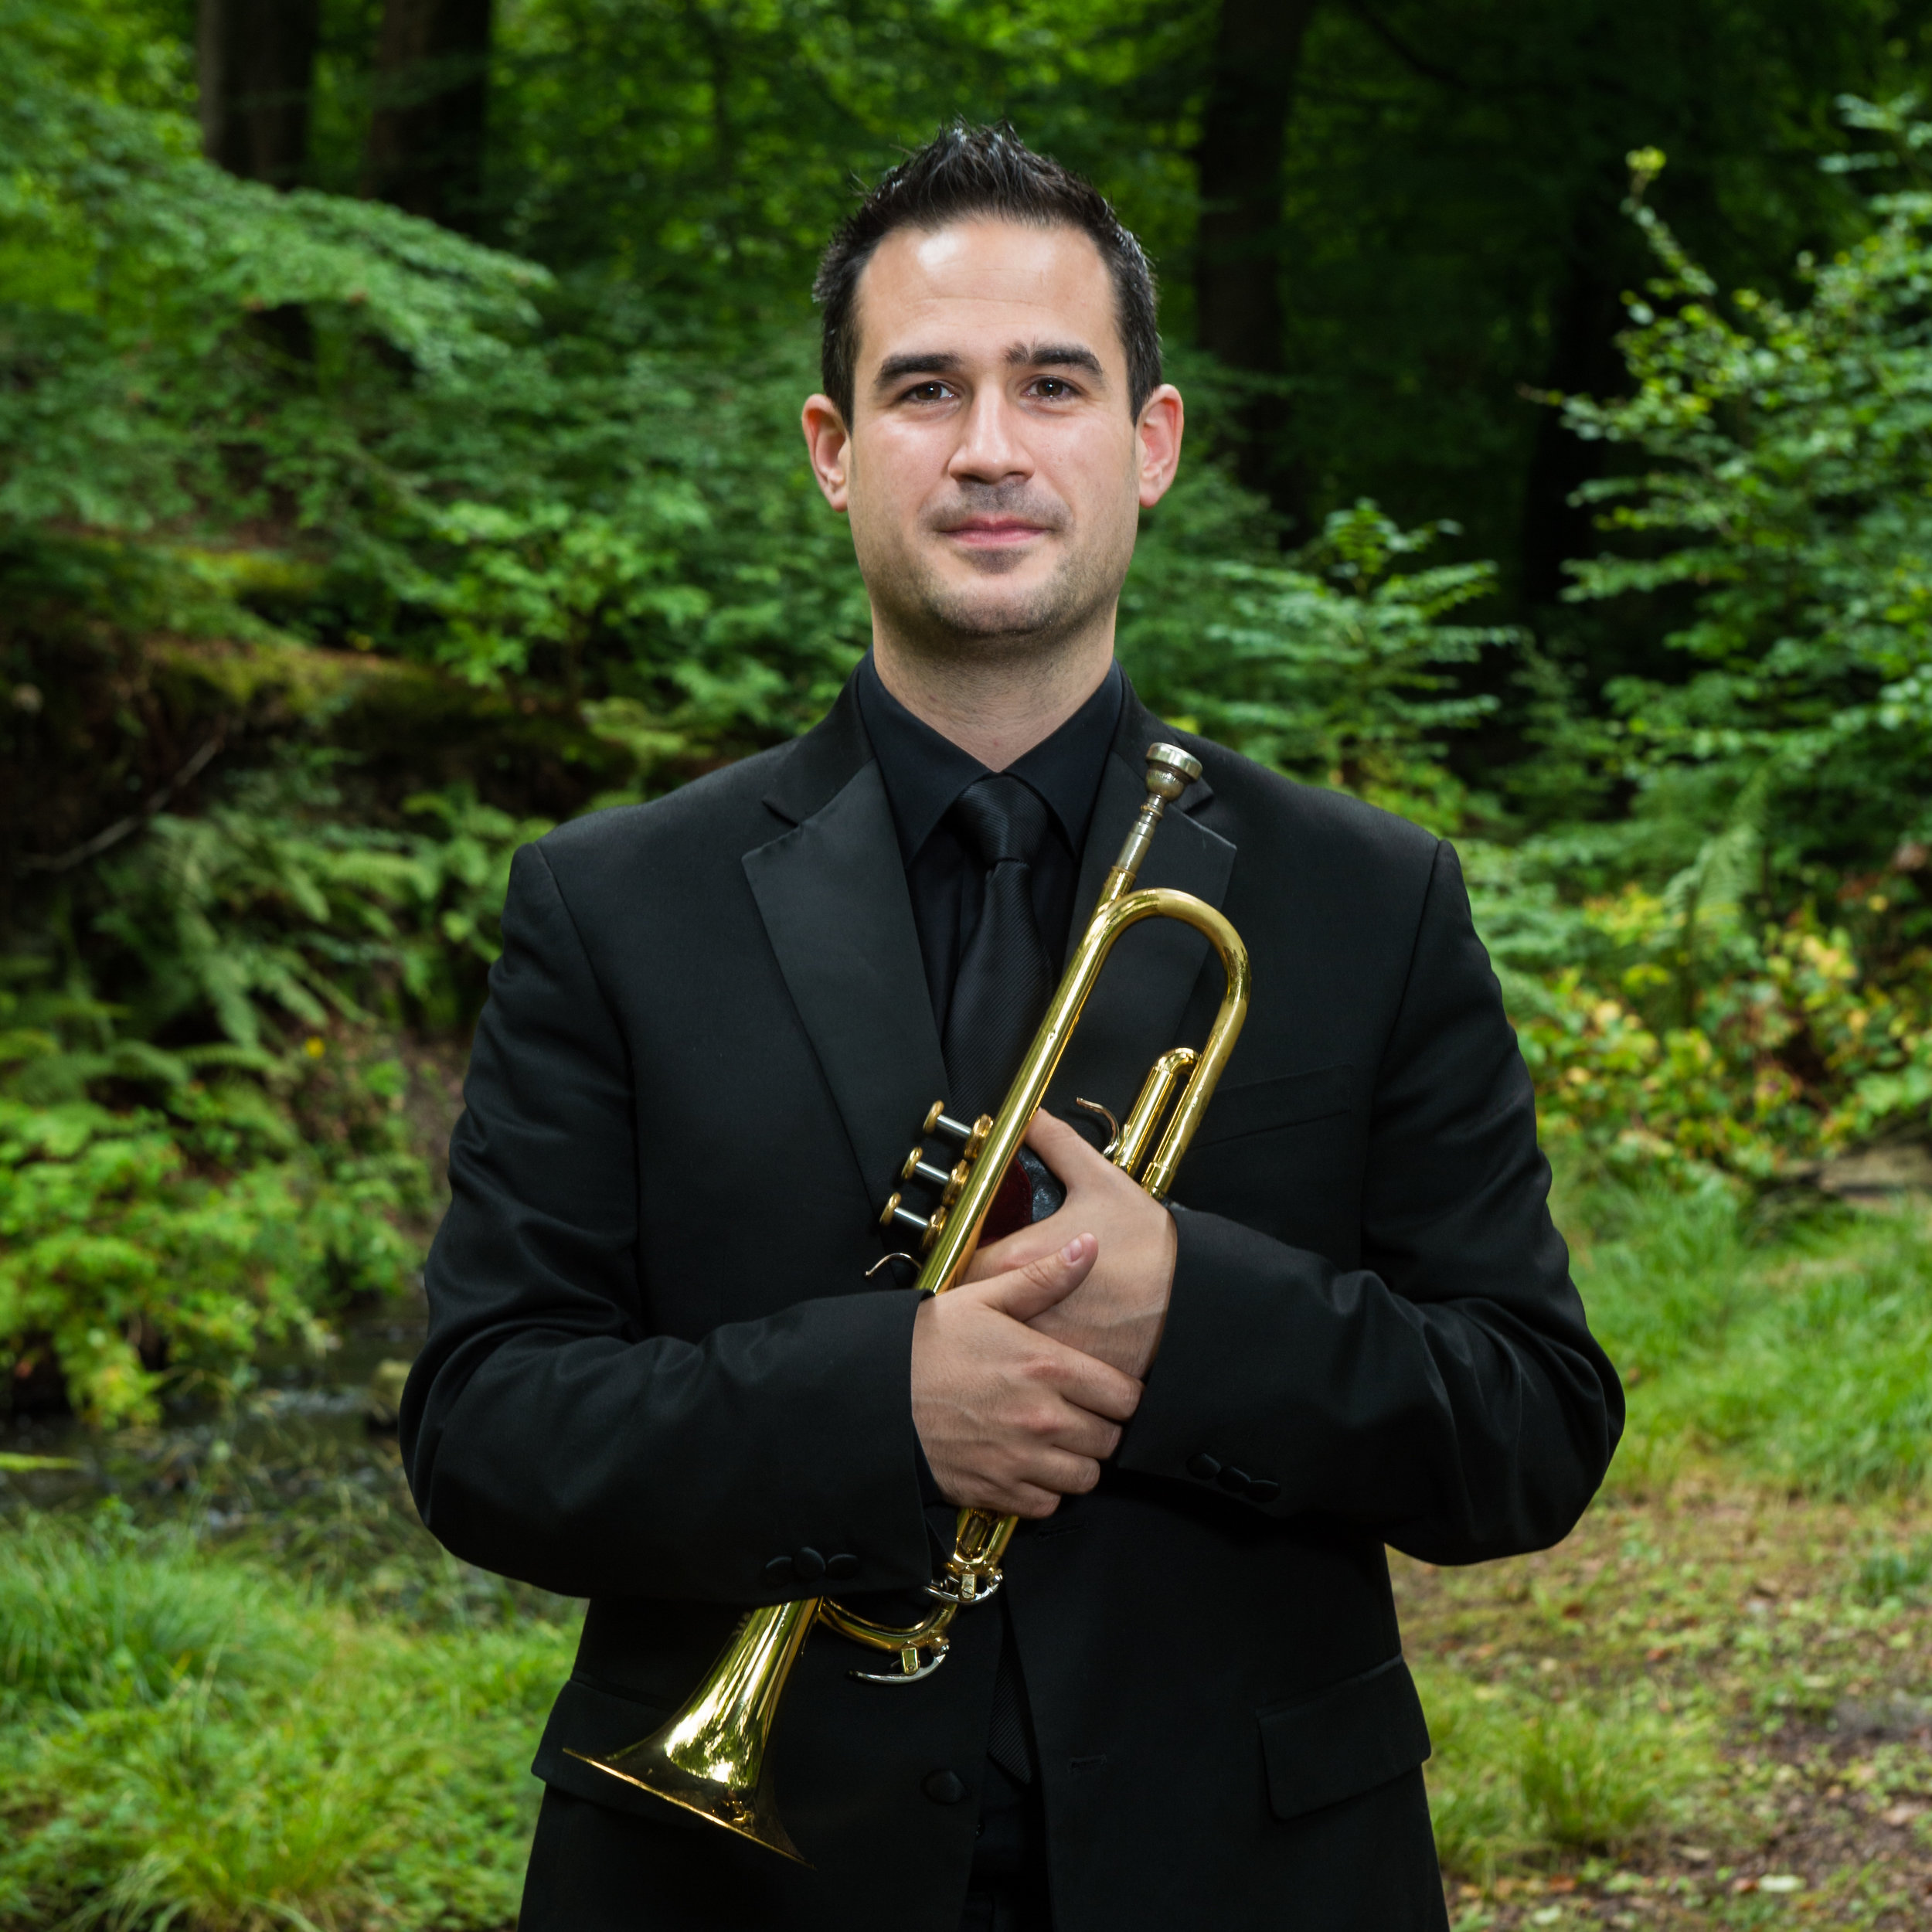 David Collins - trumpet - Originally from County Kildare, David studied trumpet at RSAMD in Glasgow, Sibelius Academy, Helsinki and completed an MMus in Trumpet at the RIAM in Dublin graduating with distinction.He was a member of the European Union Youth Orchestra (2009-2011) and has performed at the BBC Proms.David has performs regualrly with RTÉ National Symphony and Concert Orchestras, and the Irish Chamber Orchestra, in addition to holding the position of principal trumpet no.2 with the Ulster Orchestra (2016-2018).He combines responsibilities as a teacher at the Royal Irish Academy of Music and DIT Conservatory of Music with the role of Artistic Director of Dublin Brass Week, Ireland's international brass festival.